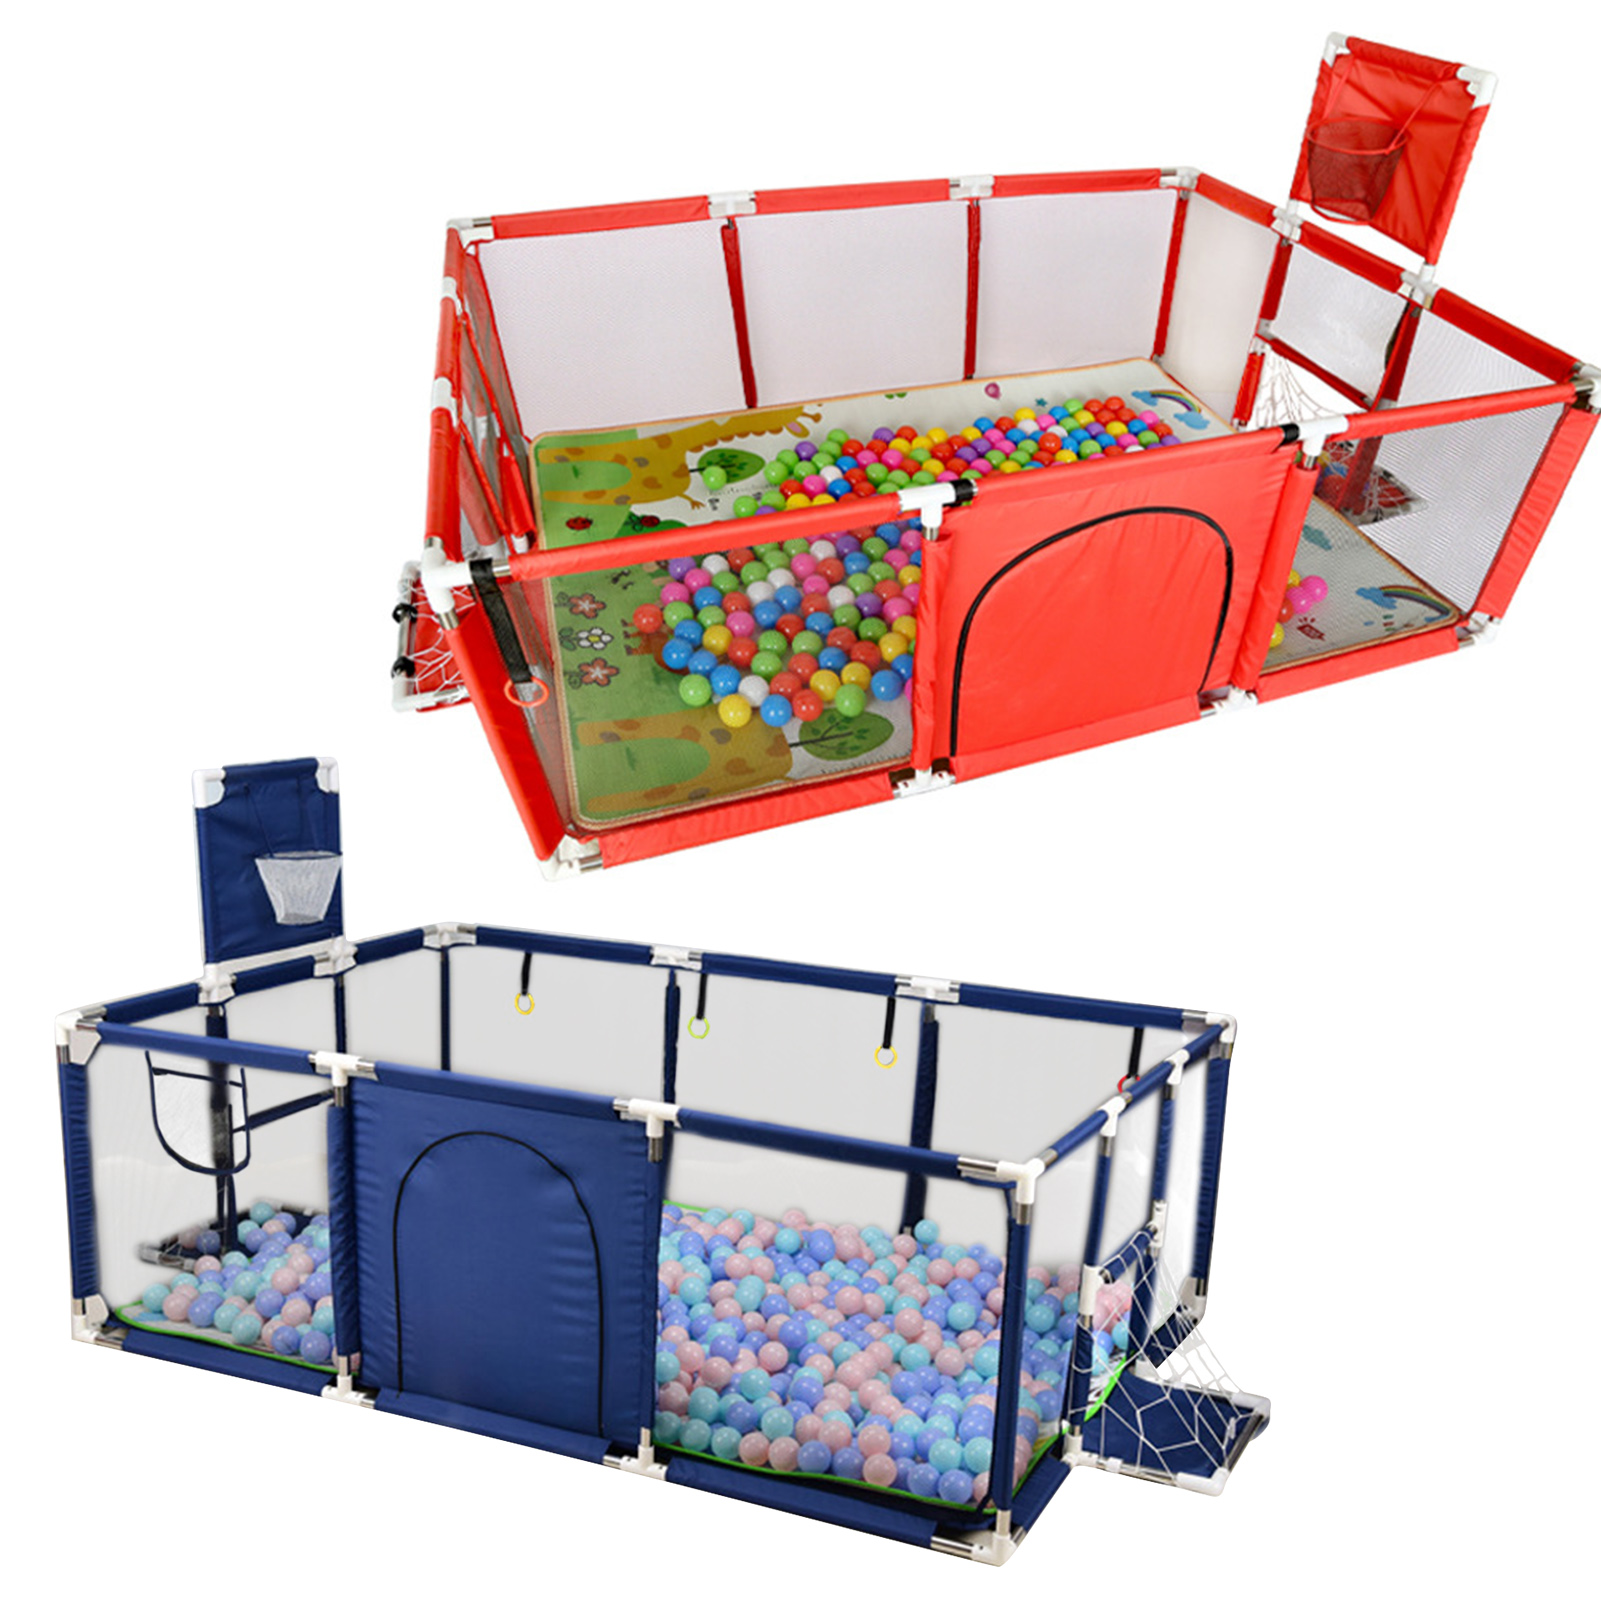 Kids Furniture Playpen With Basketball For Children Dry Ball Pool Safety Barriers Babys Playground Ball Park For 0-6 Years